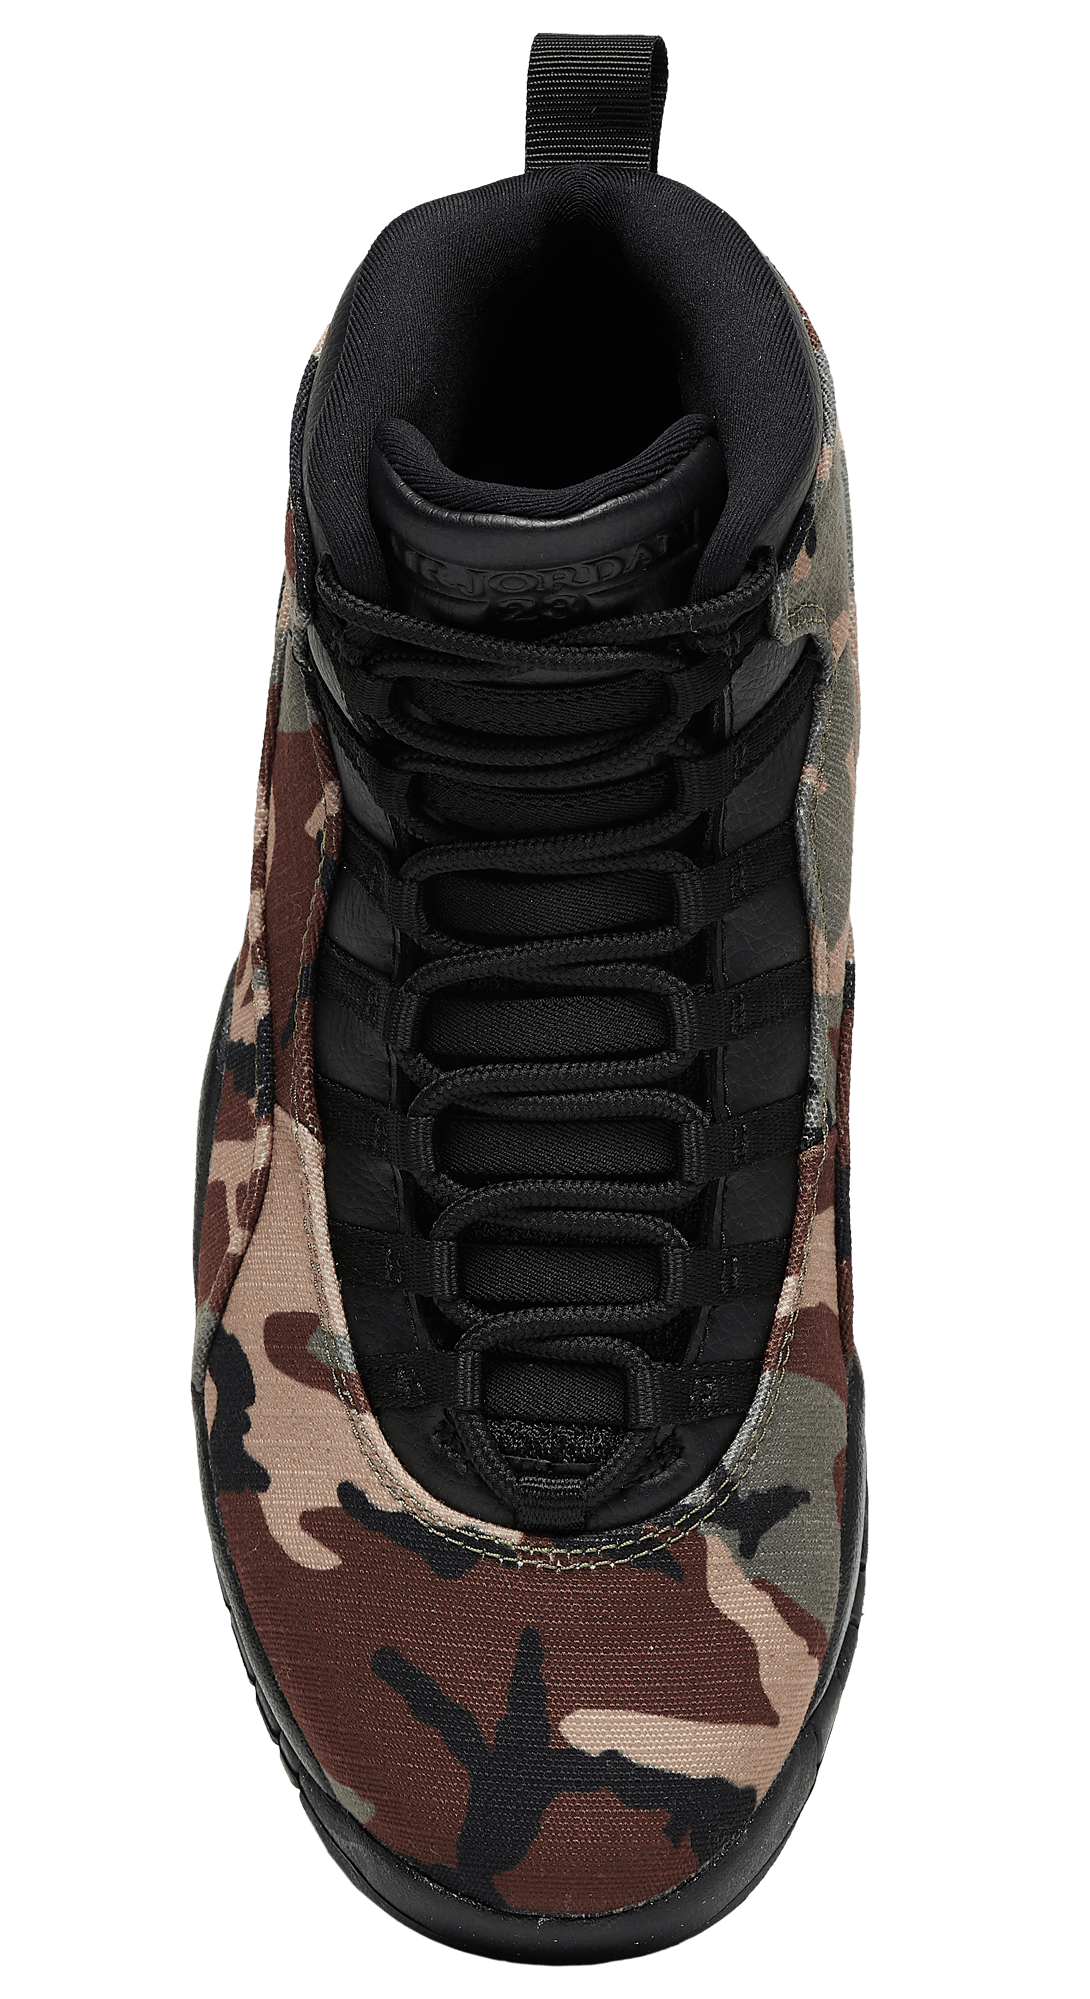 Air Jordan 10 Retro Desert Camo/Black-Light Chocolate 310805-201 Top